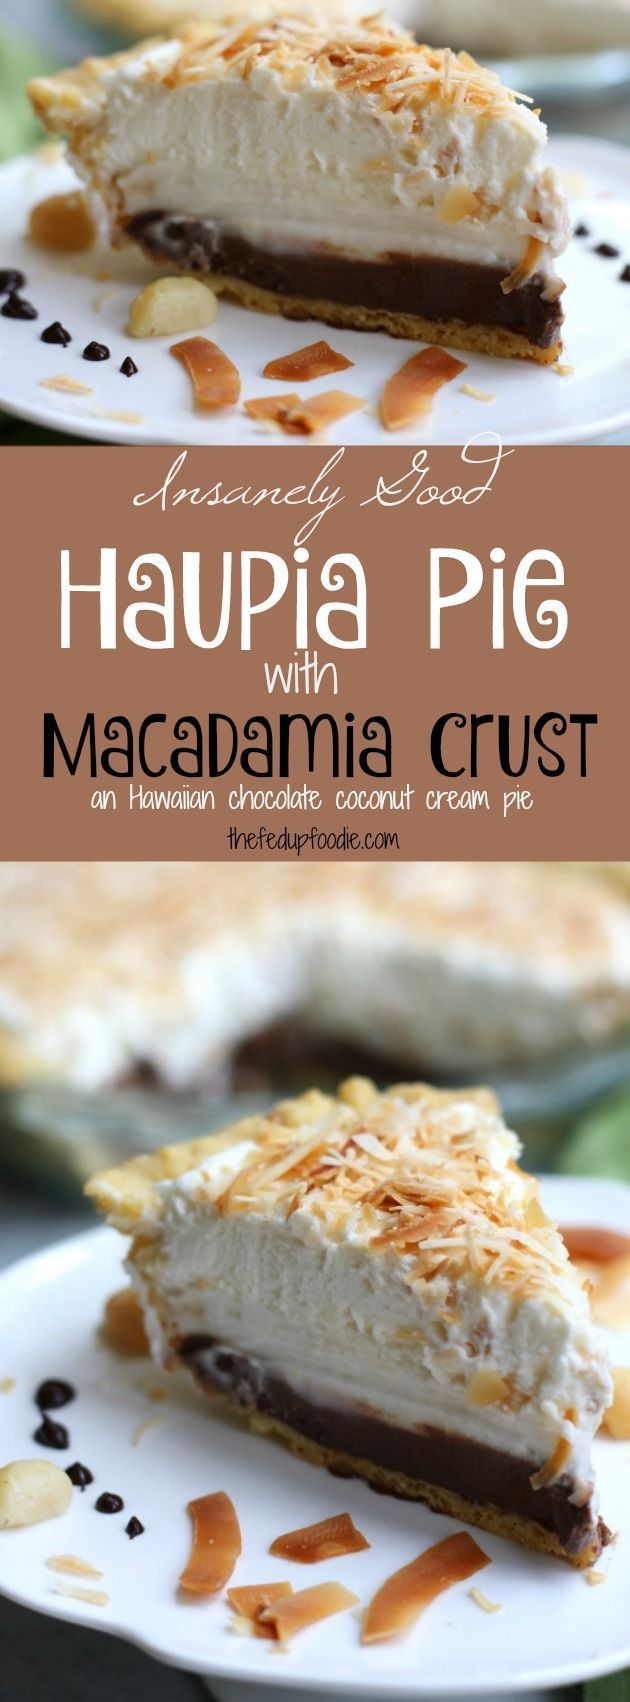 Haupia Pie recipe is an insanely good Hawaiian pie. Macadamia nut crust is covered in chocolate coconut filling and another layer of homemade creamy coconut pudding. All this is topped with fluffy whipped cream. This is one of the best pies I have ever had and by far my absolute favorite! https://www.thefedupfoodie.com